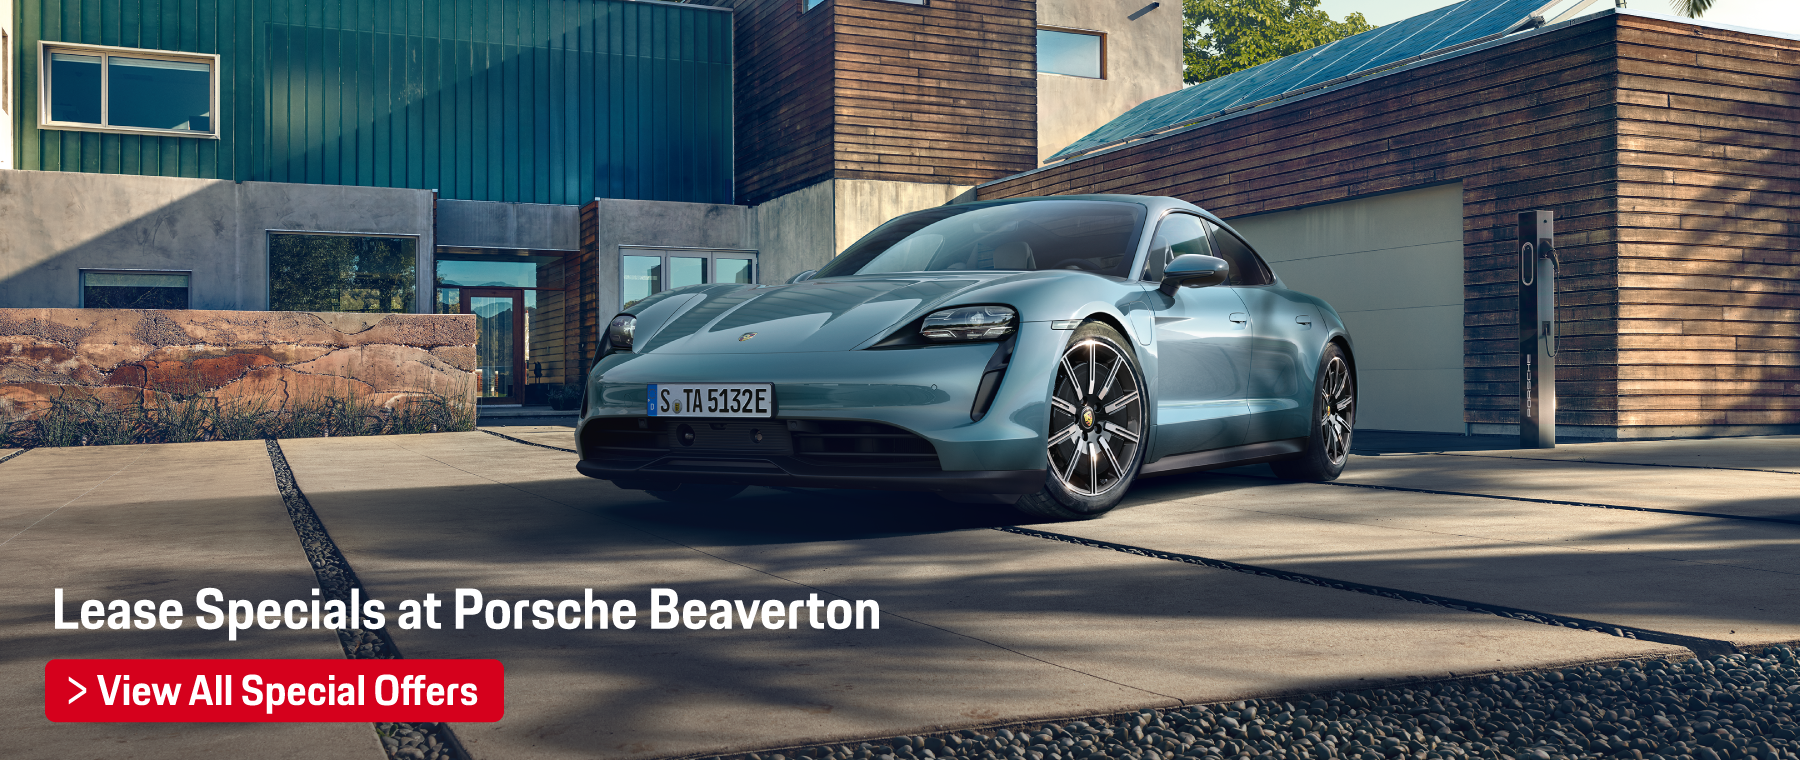 porsche-homepage-slide-october-lease